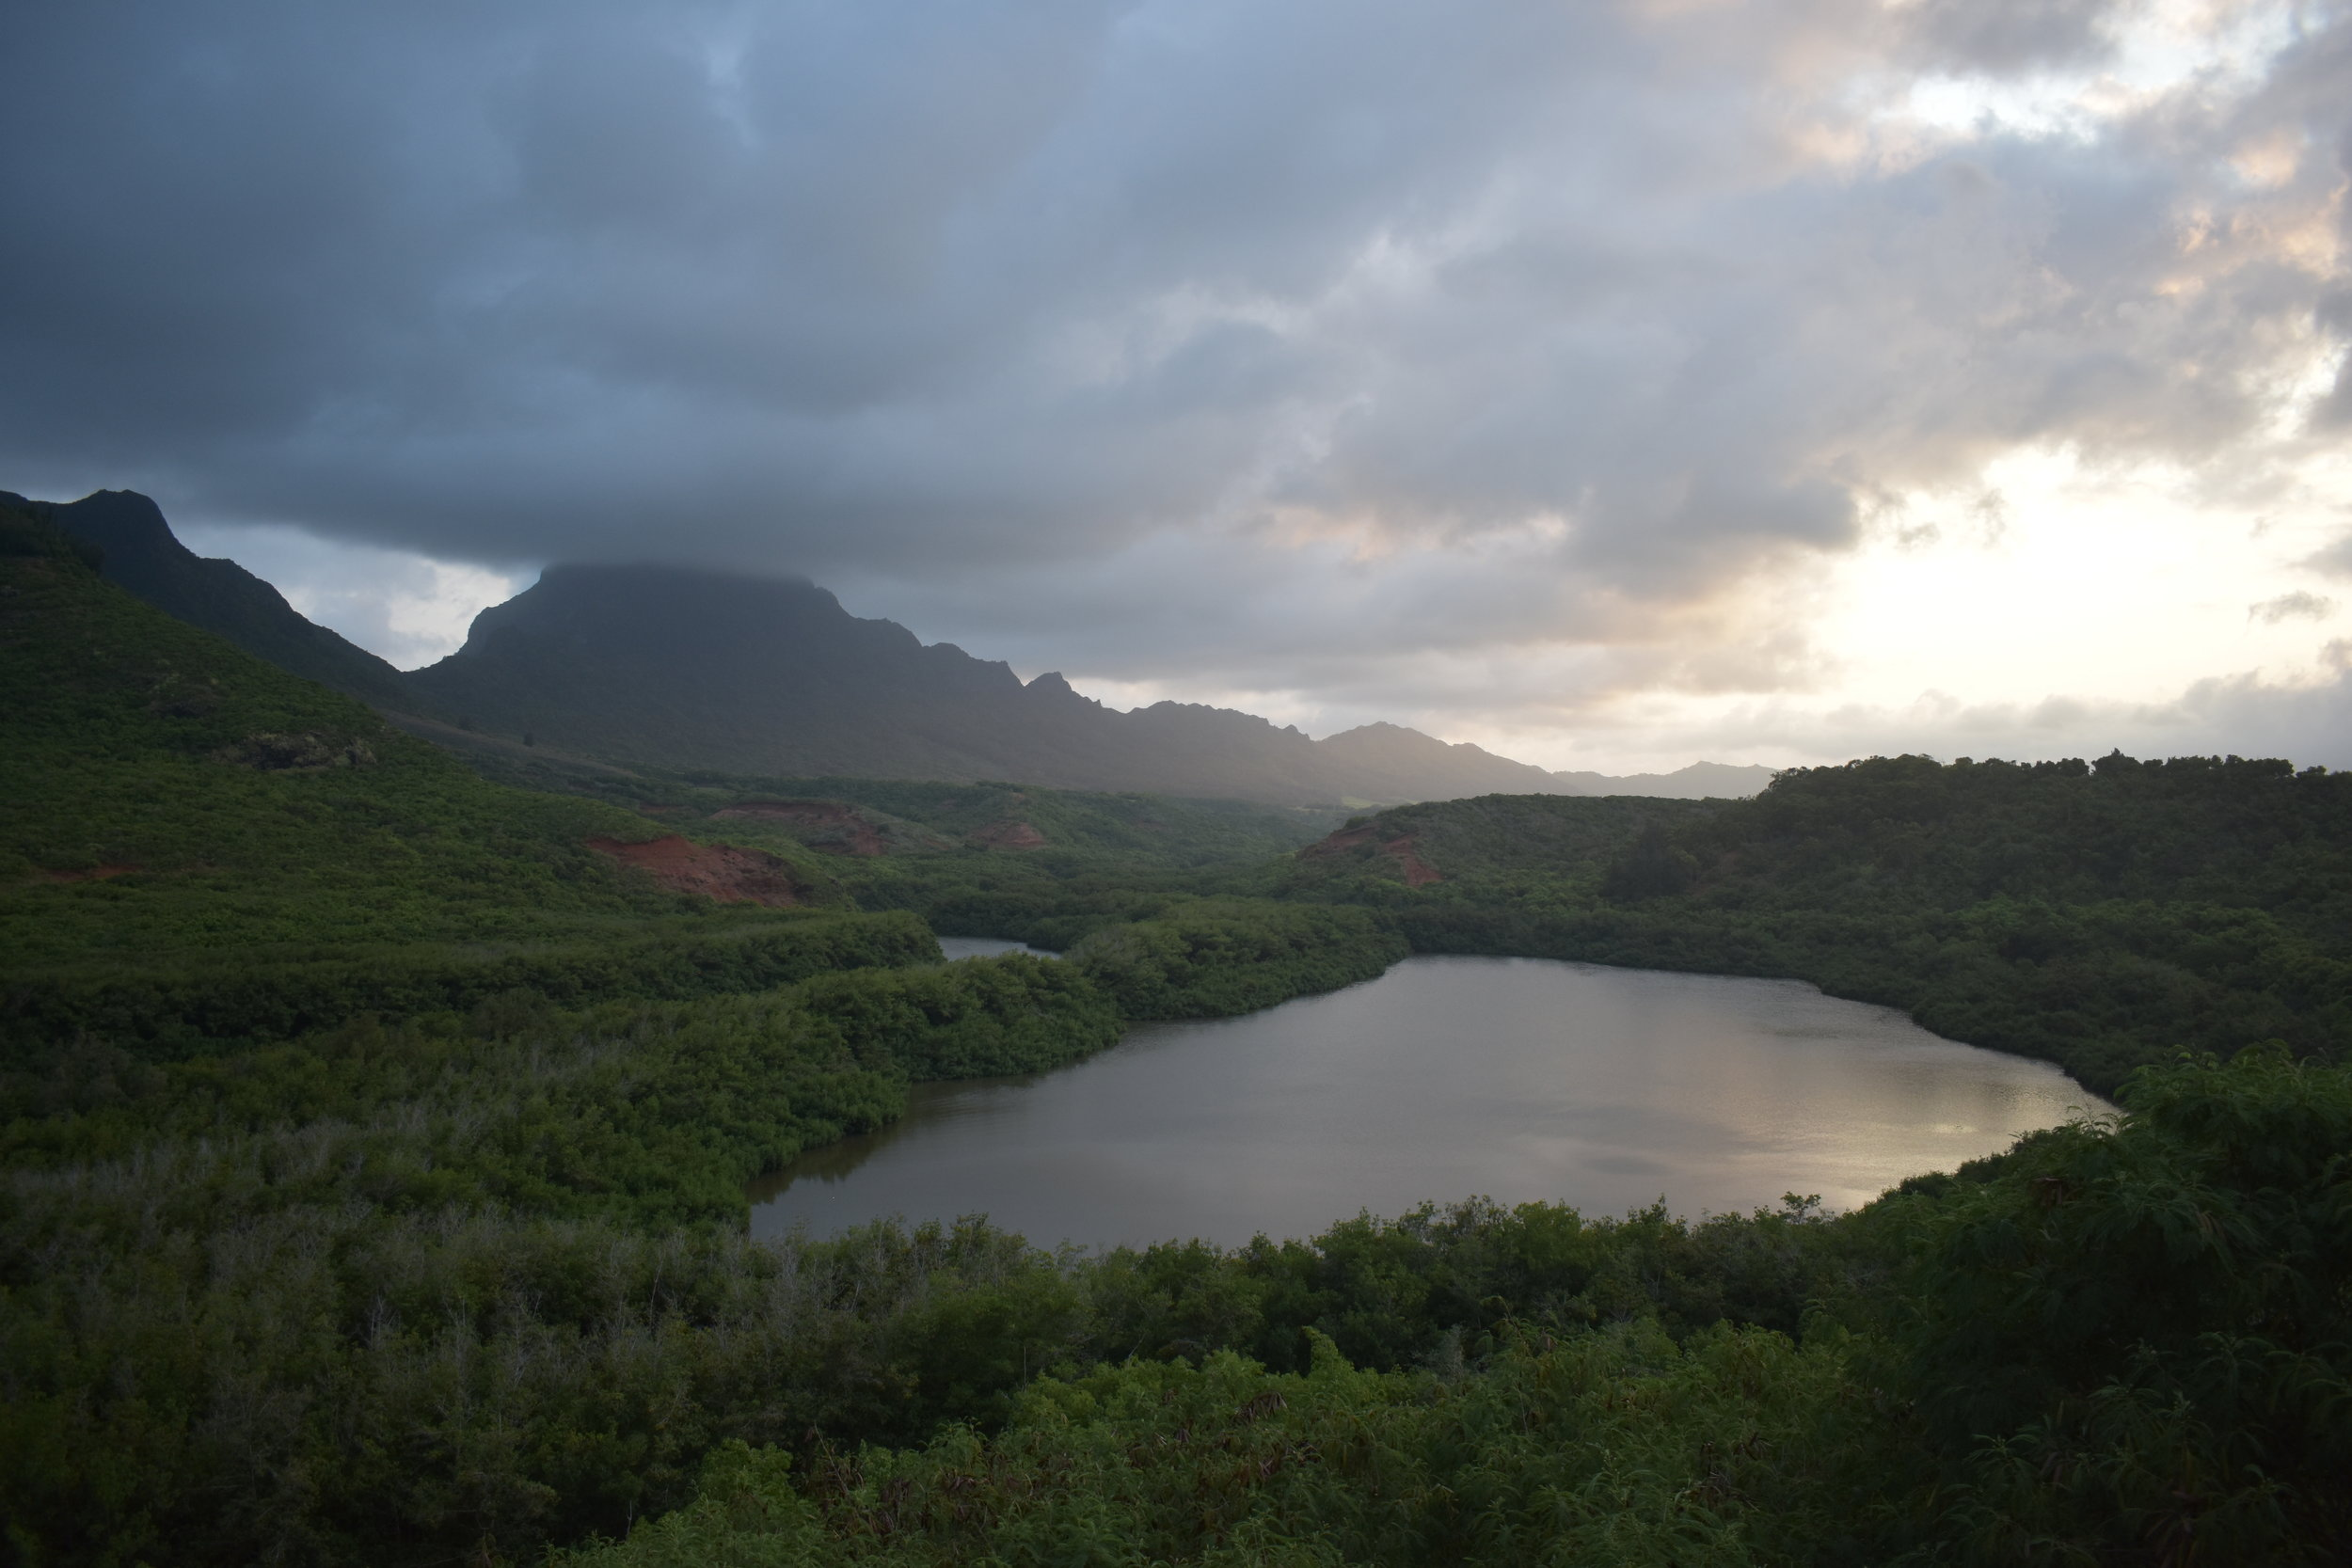 Sunset at Menehune Fishpond